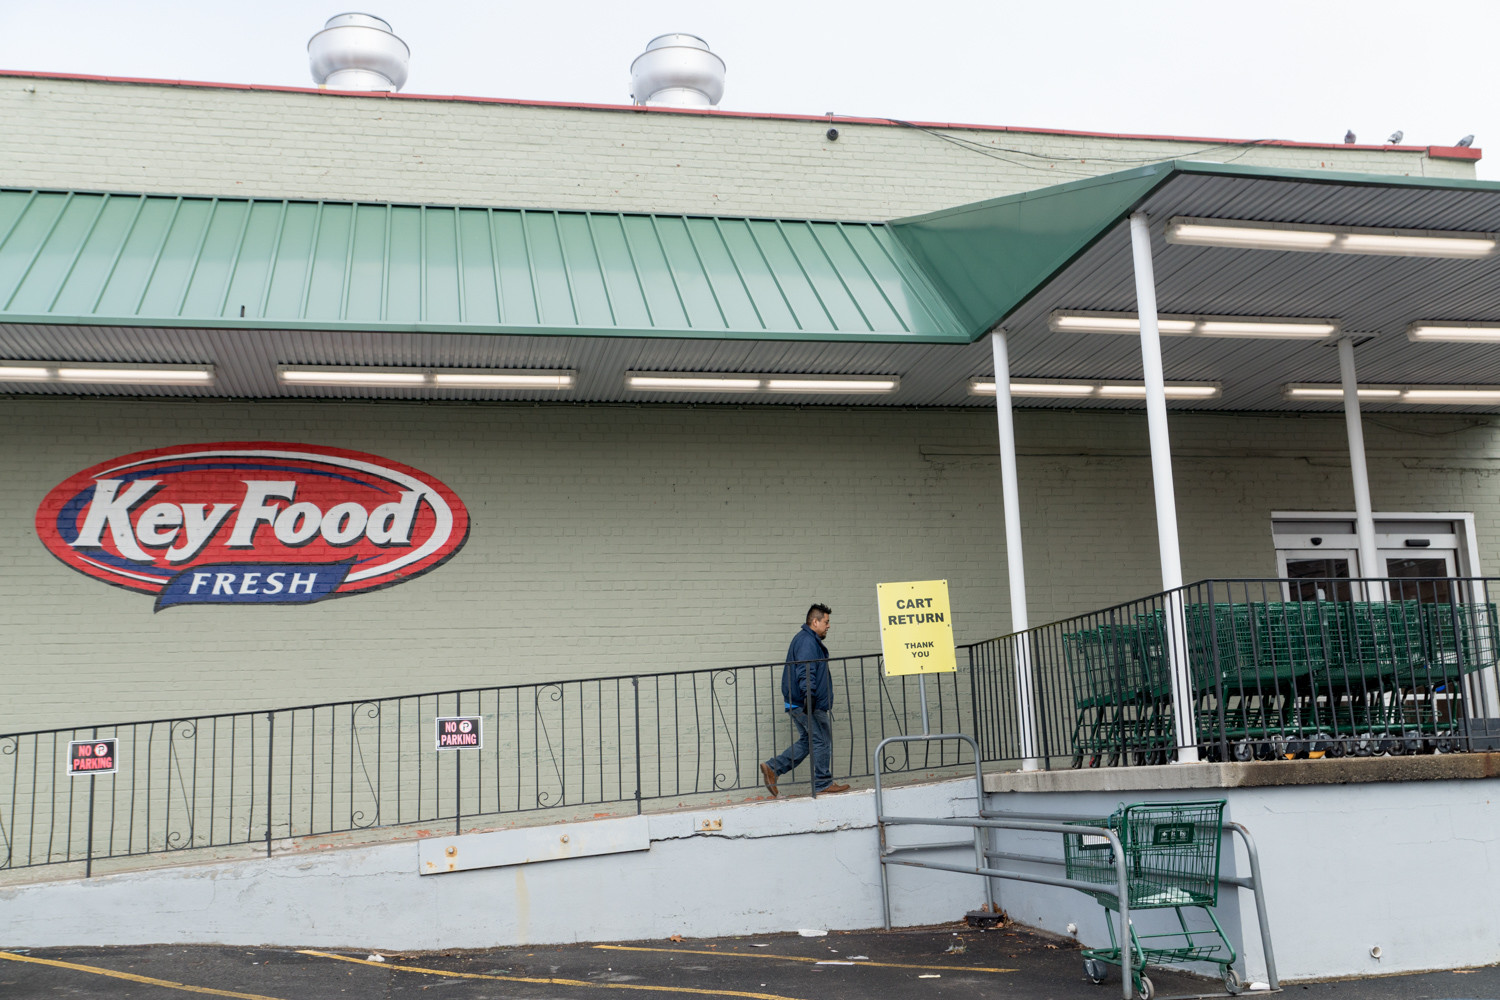 The Key Food supermarket at 540 W. 235th St. does not have security cameras inside to catch alleged pickpockets, said Richard Grobman, the president of the franchise that owns the grocery store. But there are cameras outside at the front and the back of the store.